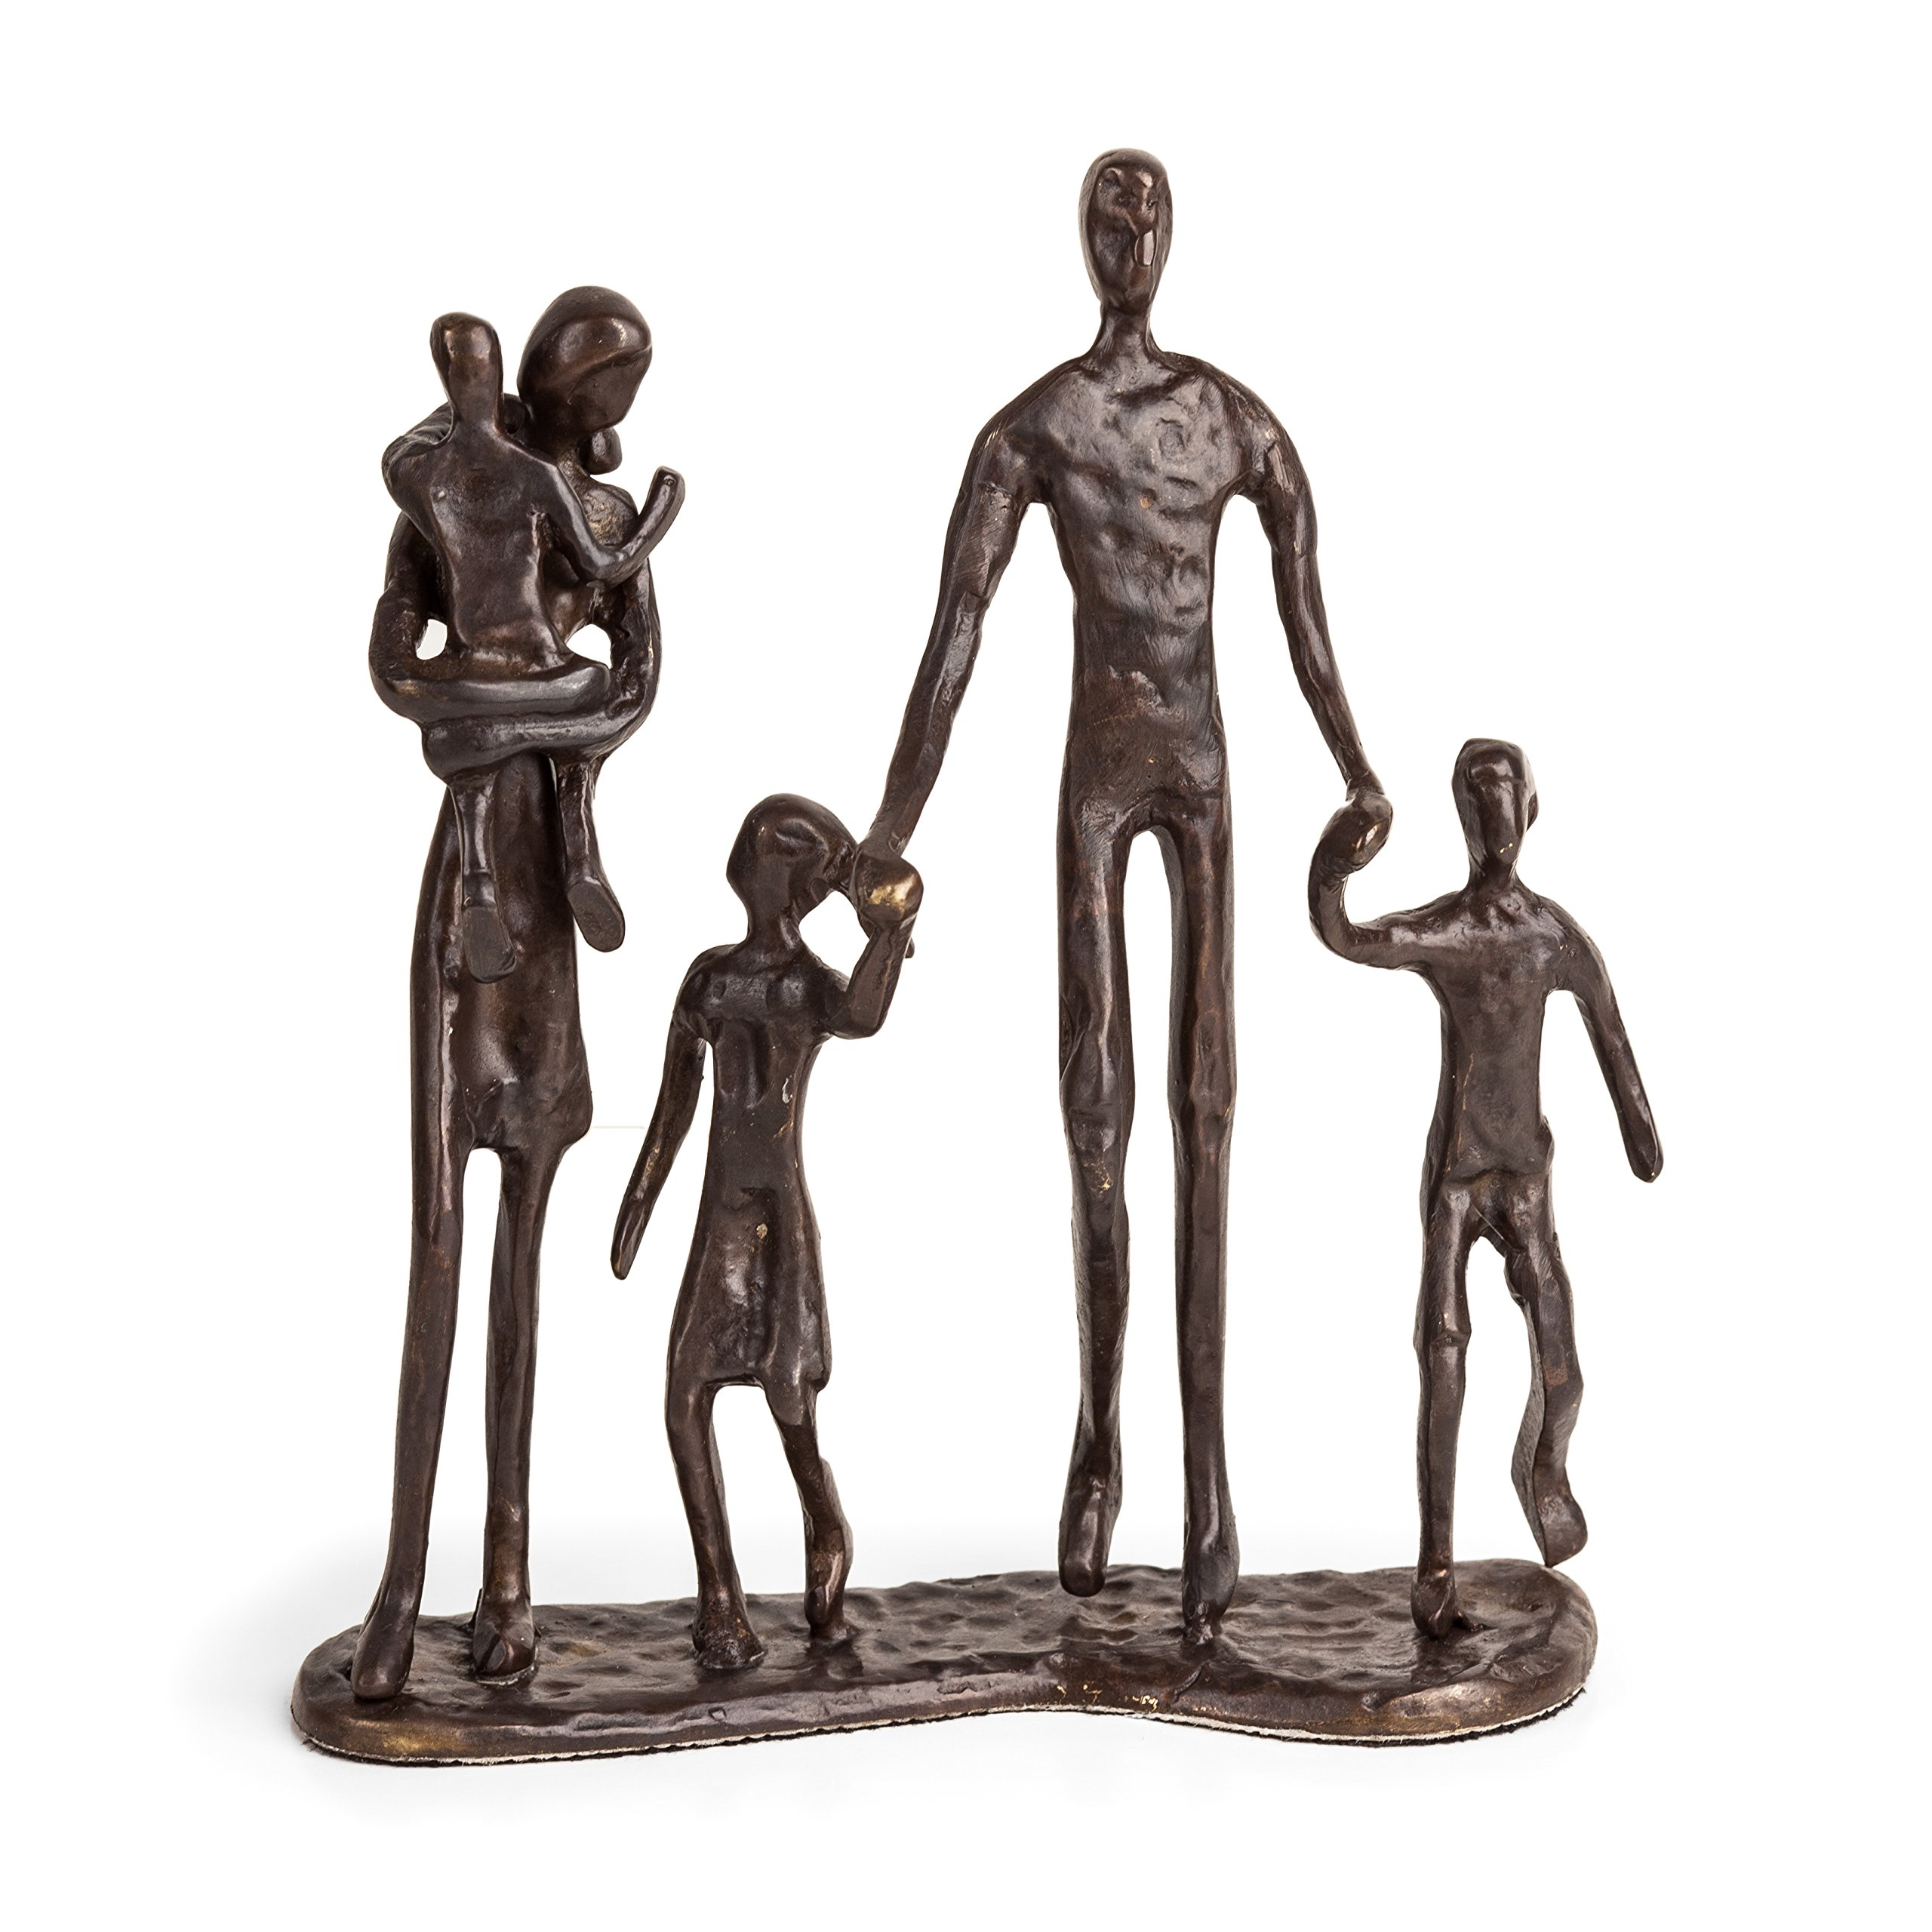 Danya B. Family of Five Sand Casted Metal Sculpture in a Beautiful Bronze Finish Bottom-Lined with Velveteen by Danya B